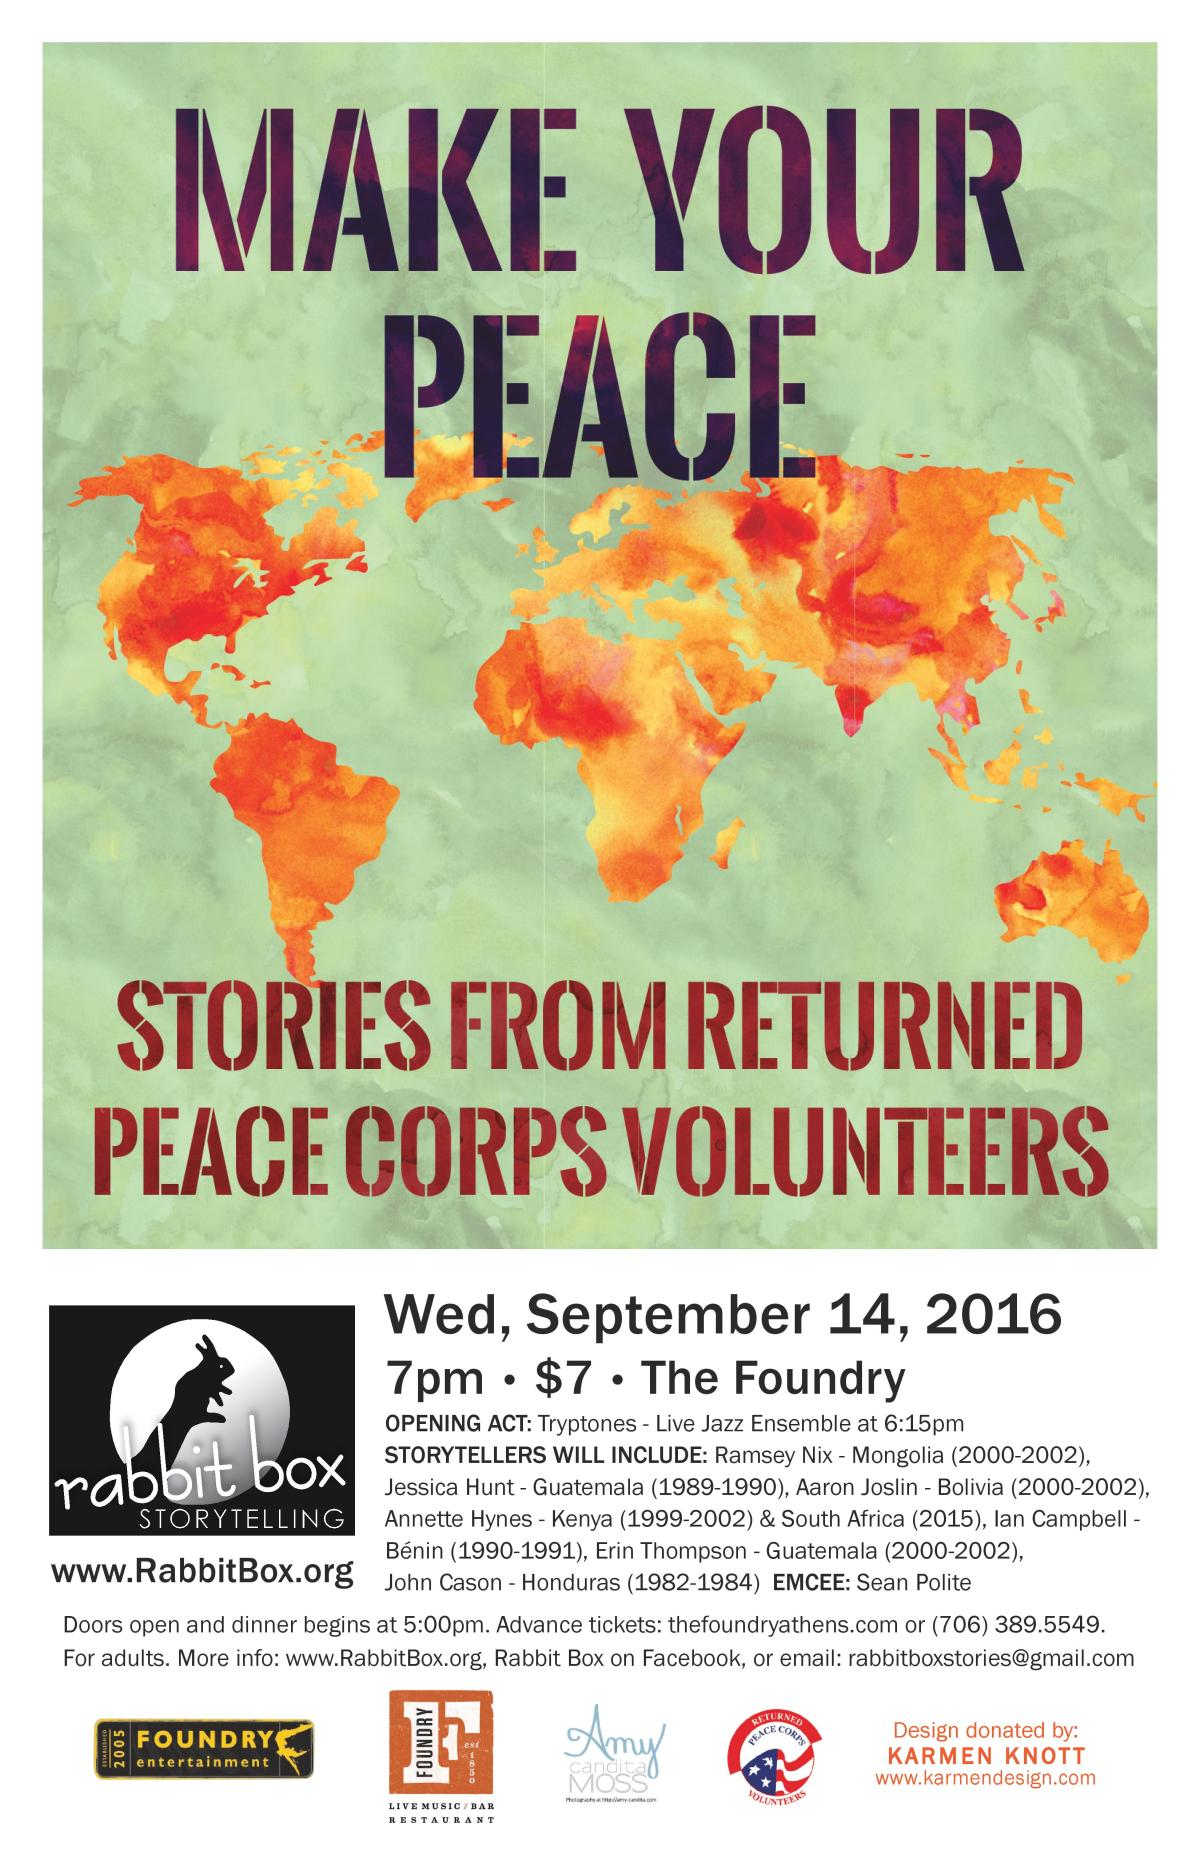 Poster for Make Your Peace: Stories from returned Peace Corps Volunteers